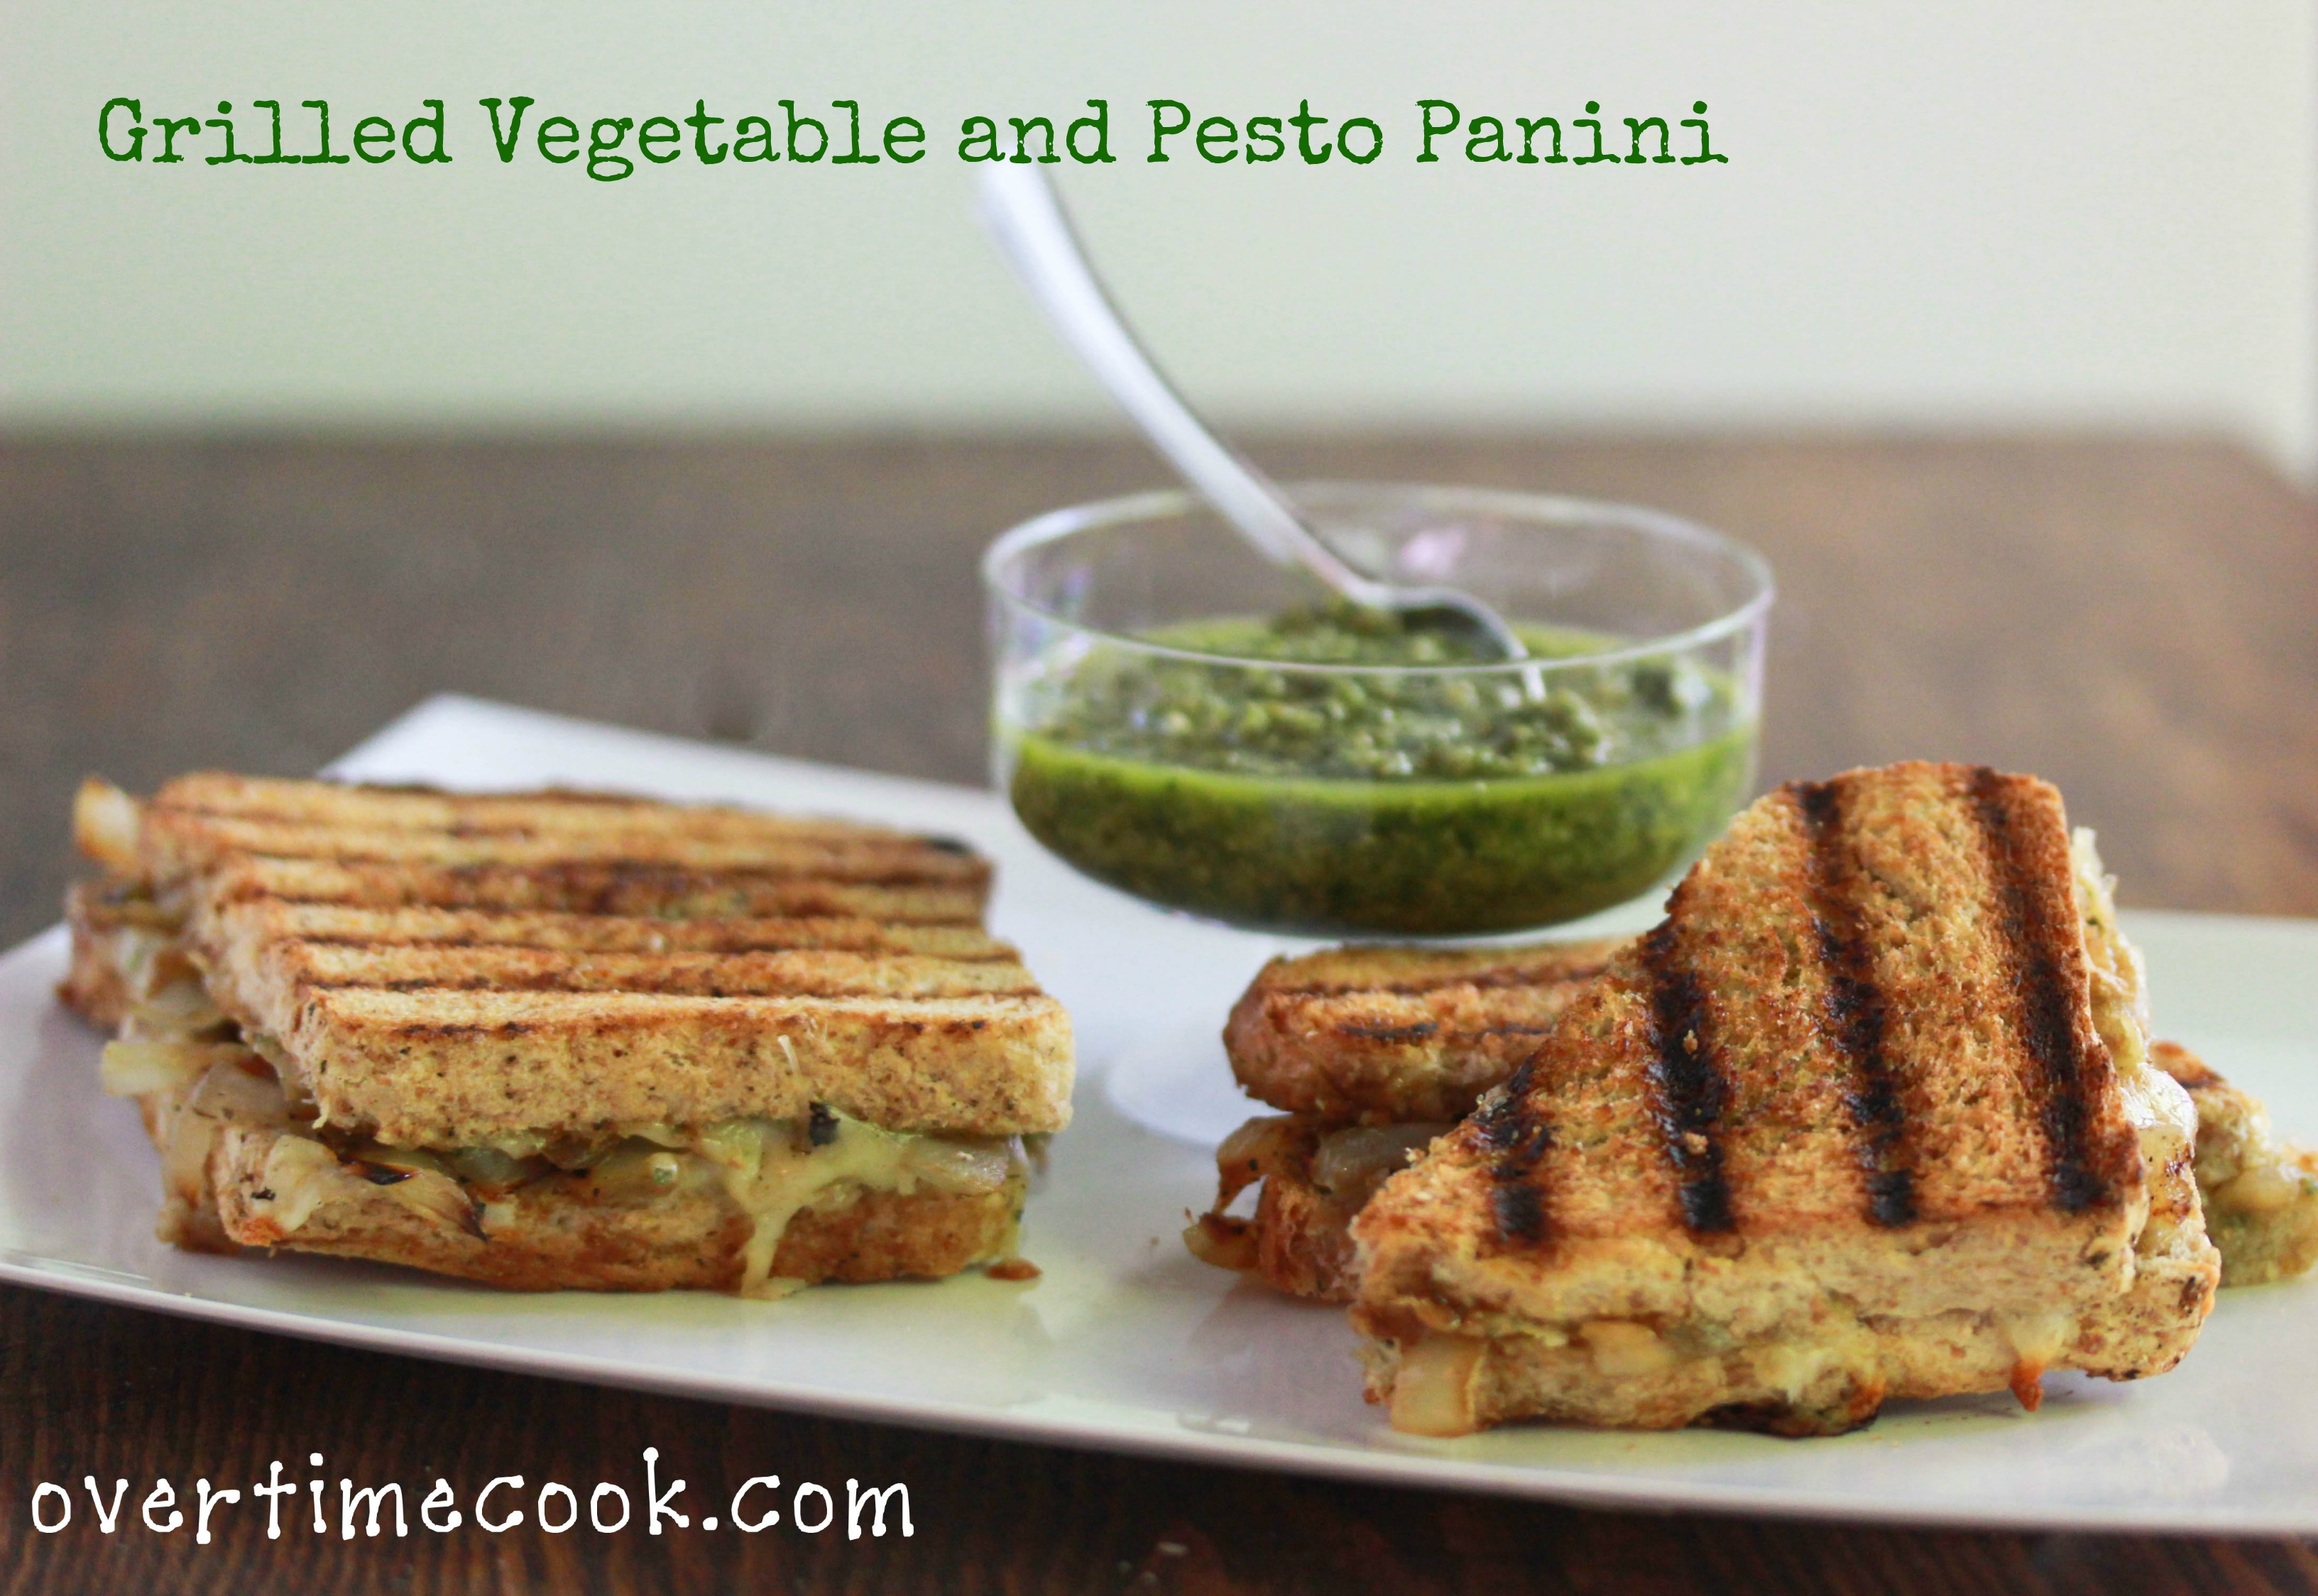 Grilled Vegetable and Pesto Panini - Overtime Cook